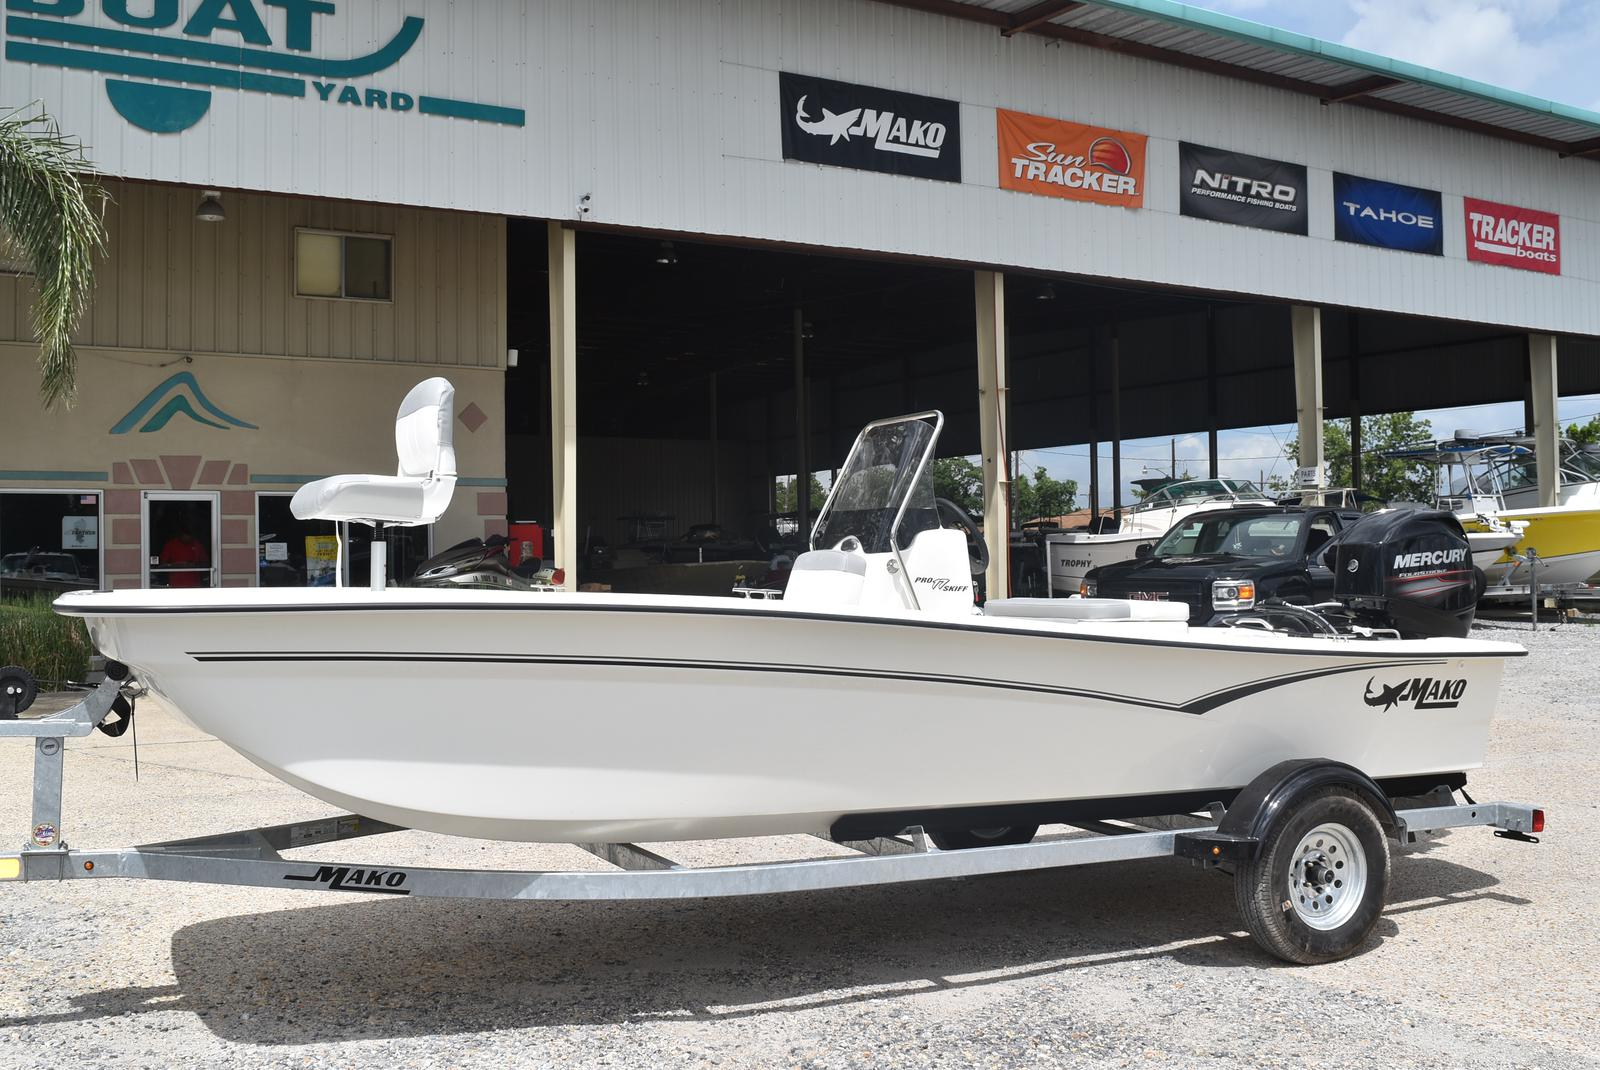 2020 Mako boat for sale, model of the boat is Pro Skiff 17, 75 ELPT & Image # 152 of 702